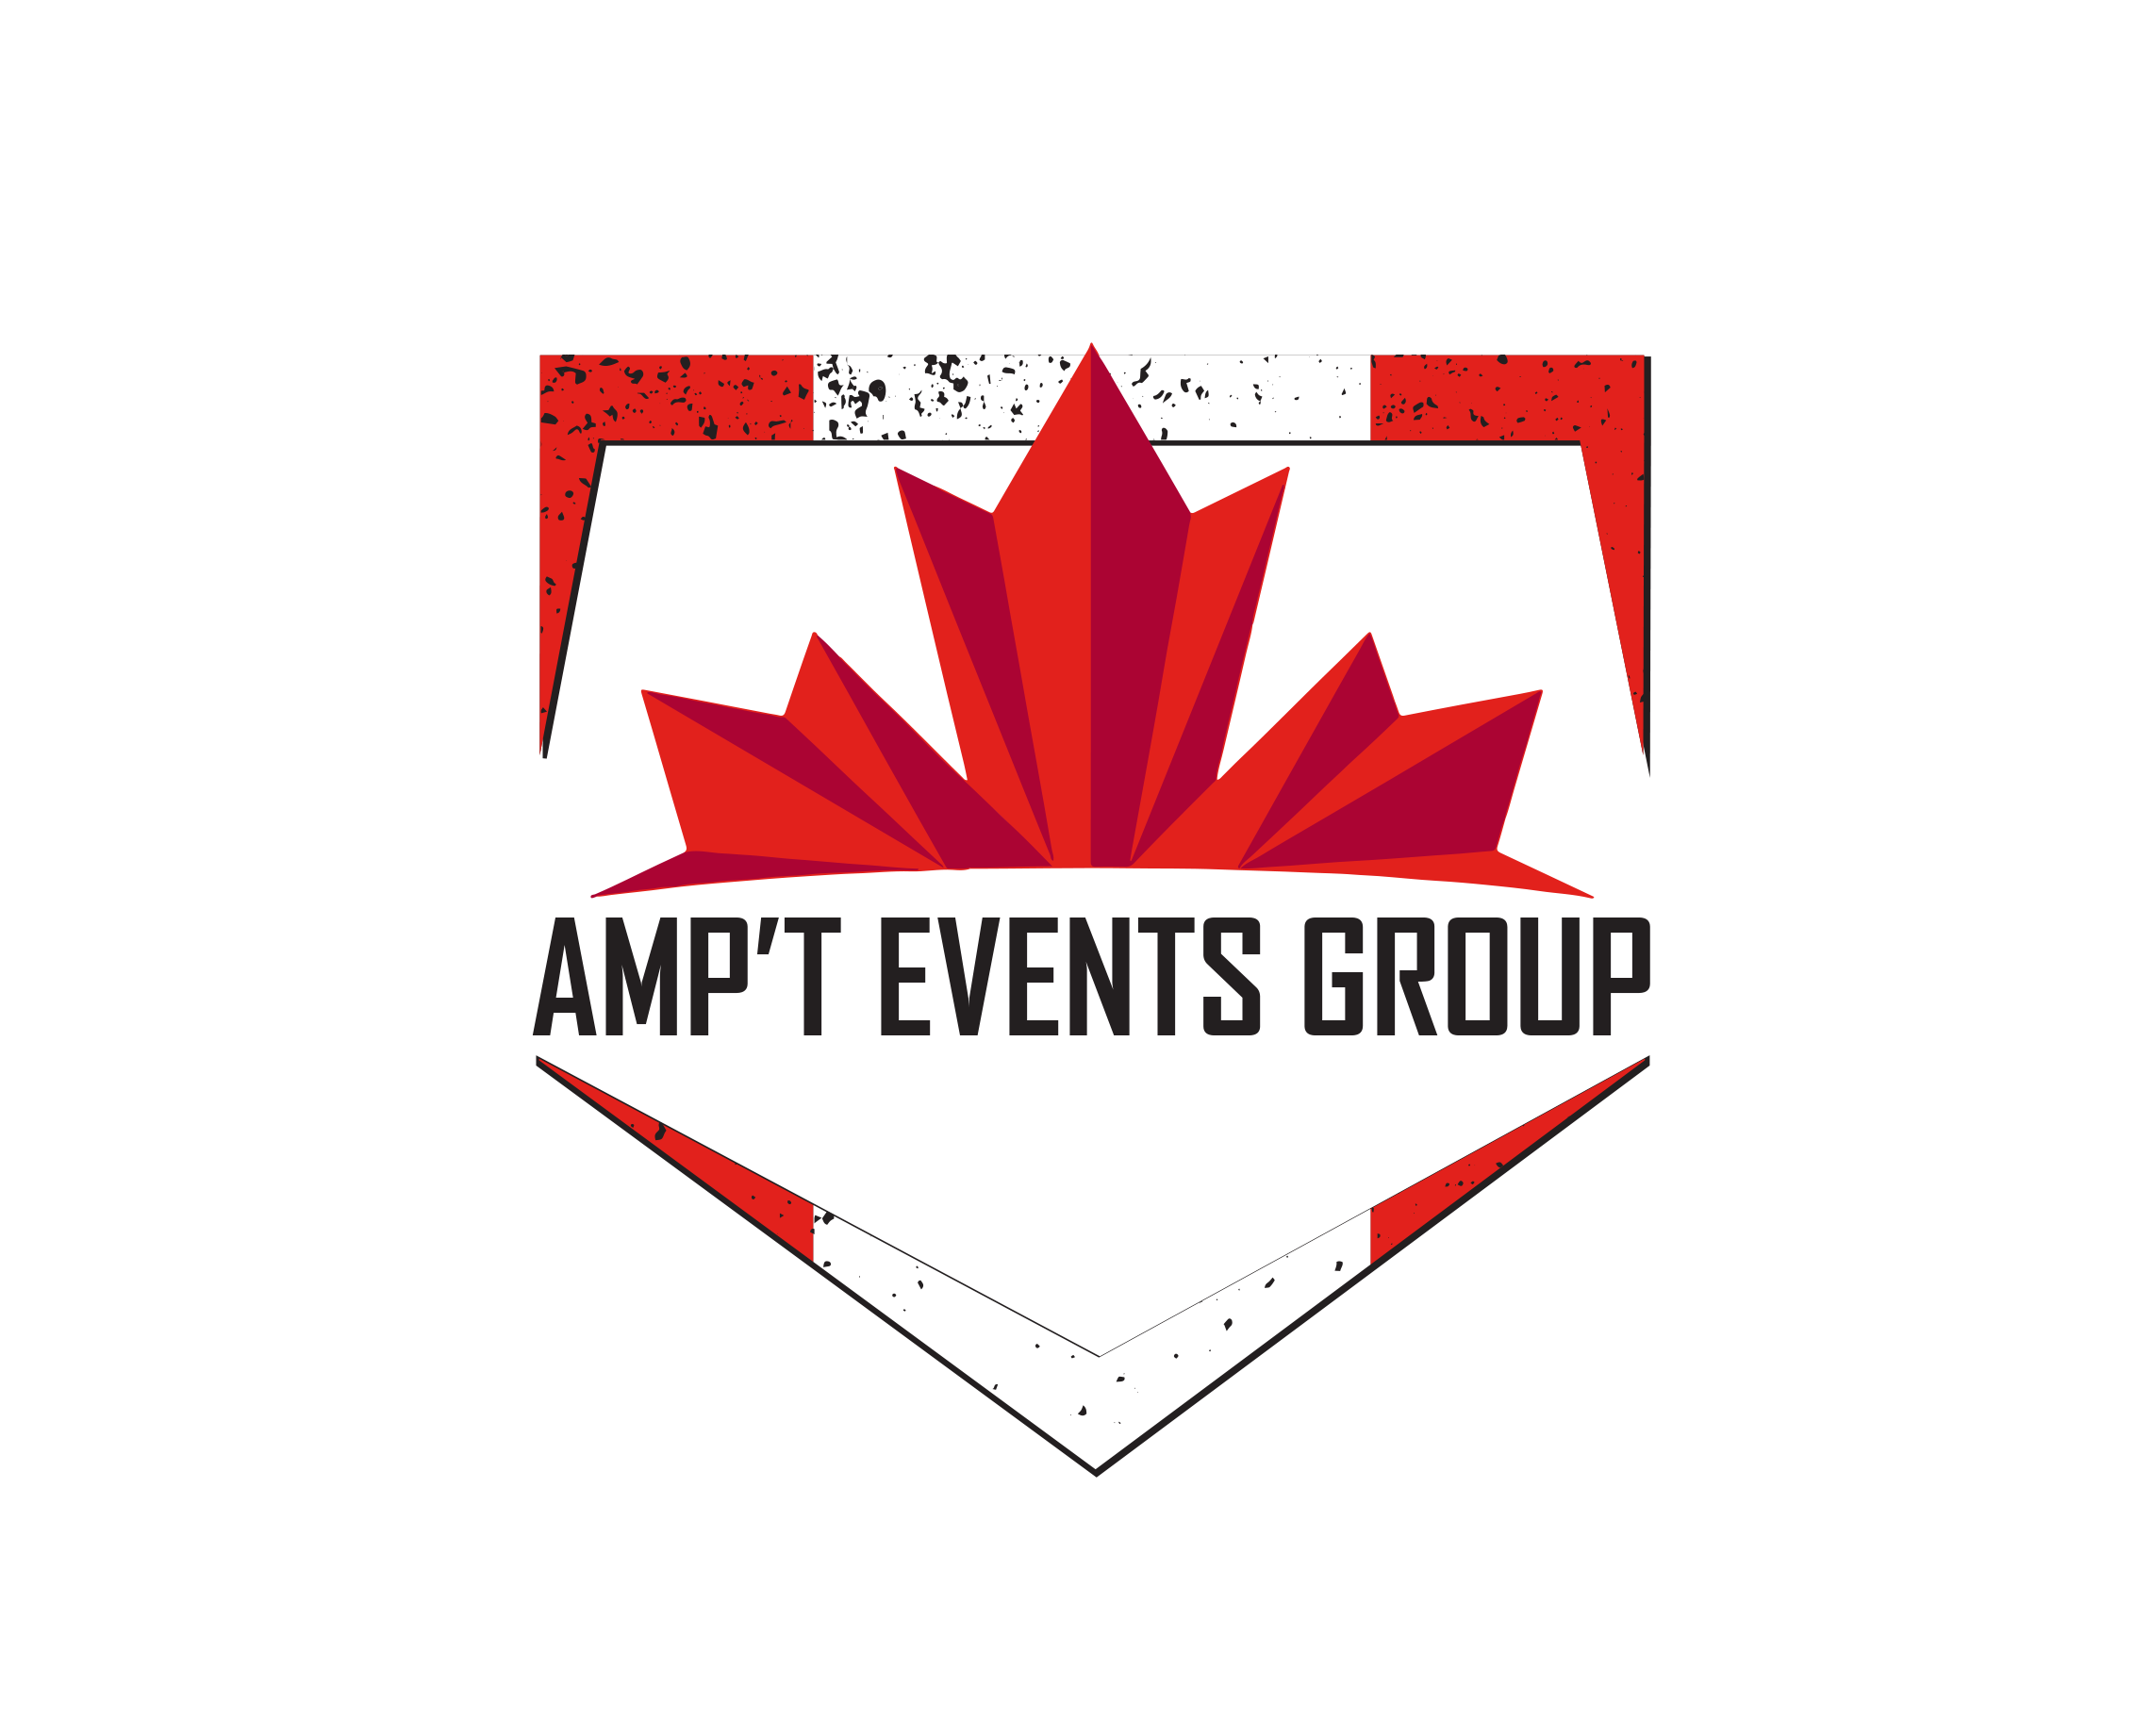 AMP'T Events Group